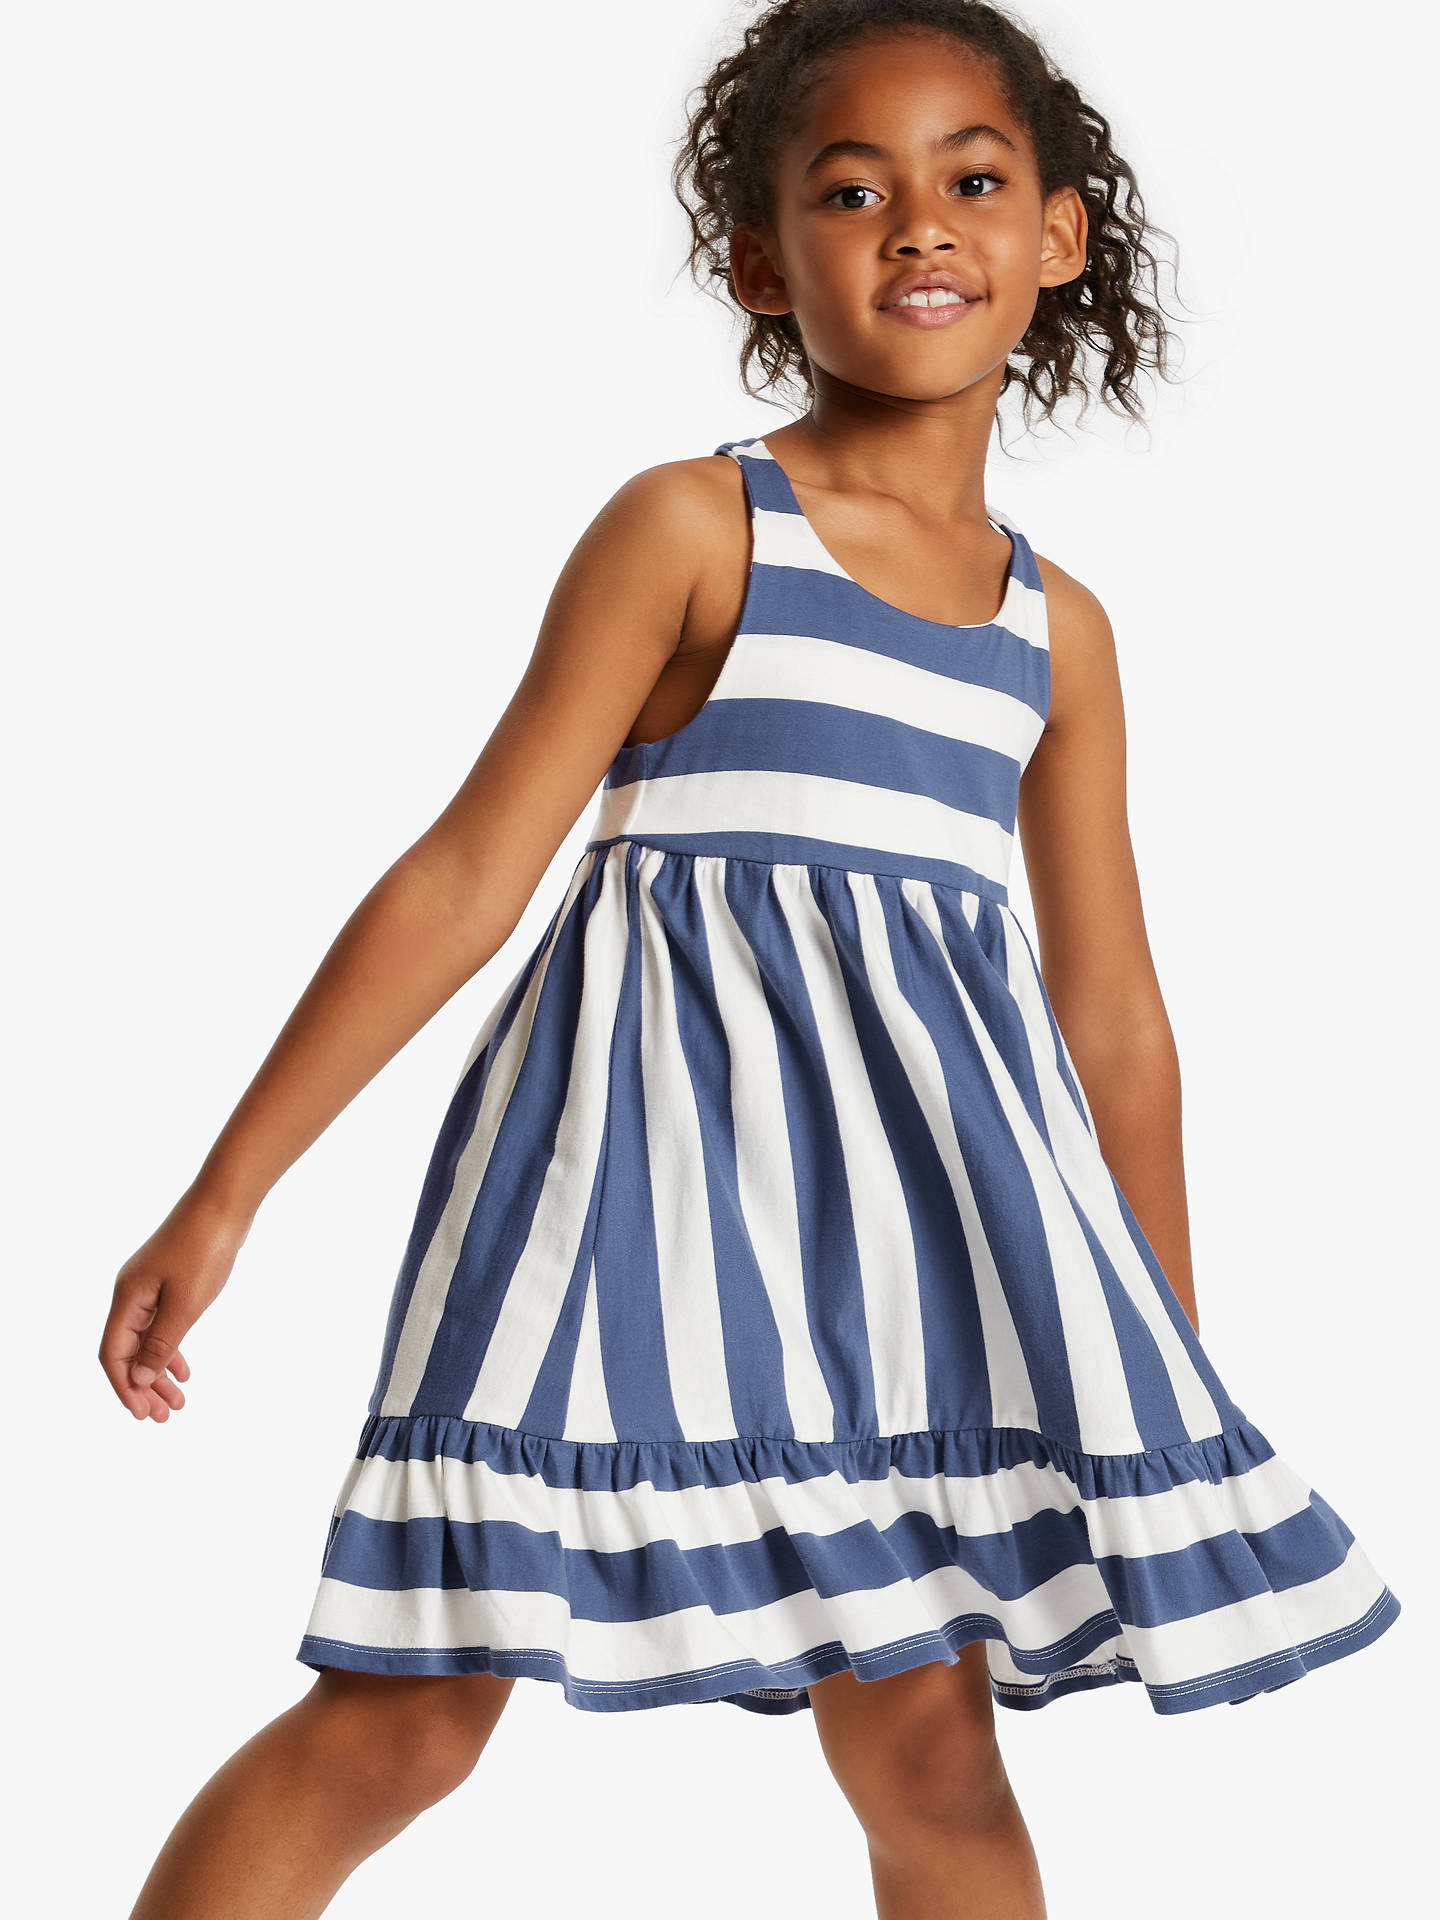 da9de889af44 Buy Little Joules Girls' Juno Peplum Midi Dress, White/Blue, 4 years ...